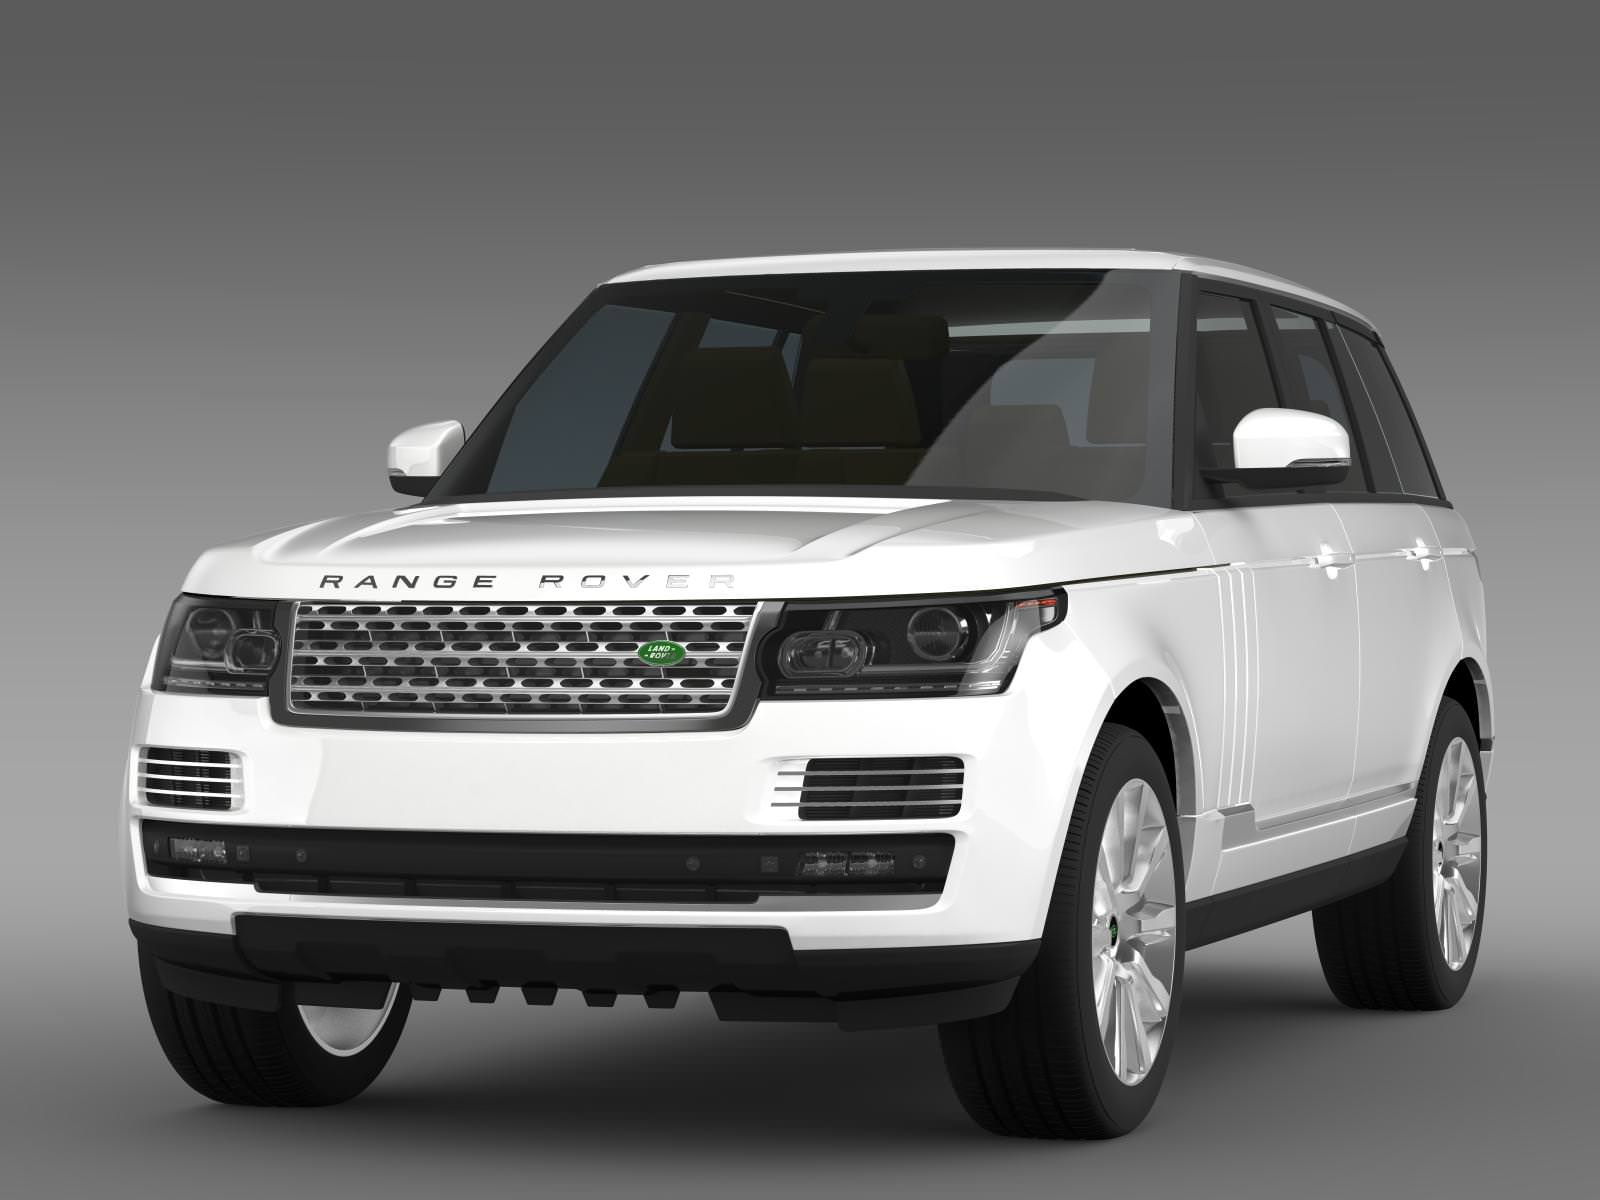 range rover supercharged l405 3d model max obj 3ds fbx c4d lwo lw lws. Black Bedroom Furniture Sets. Home Design Ideas